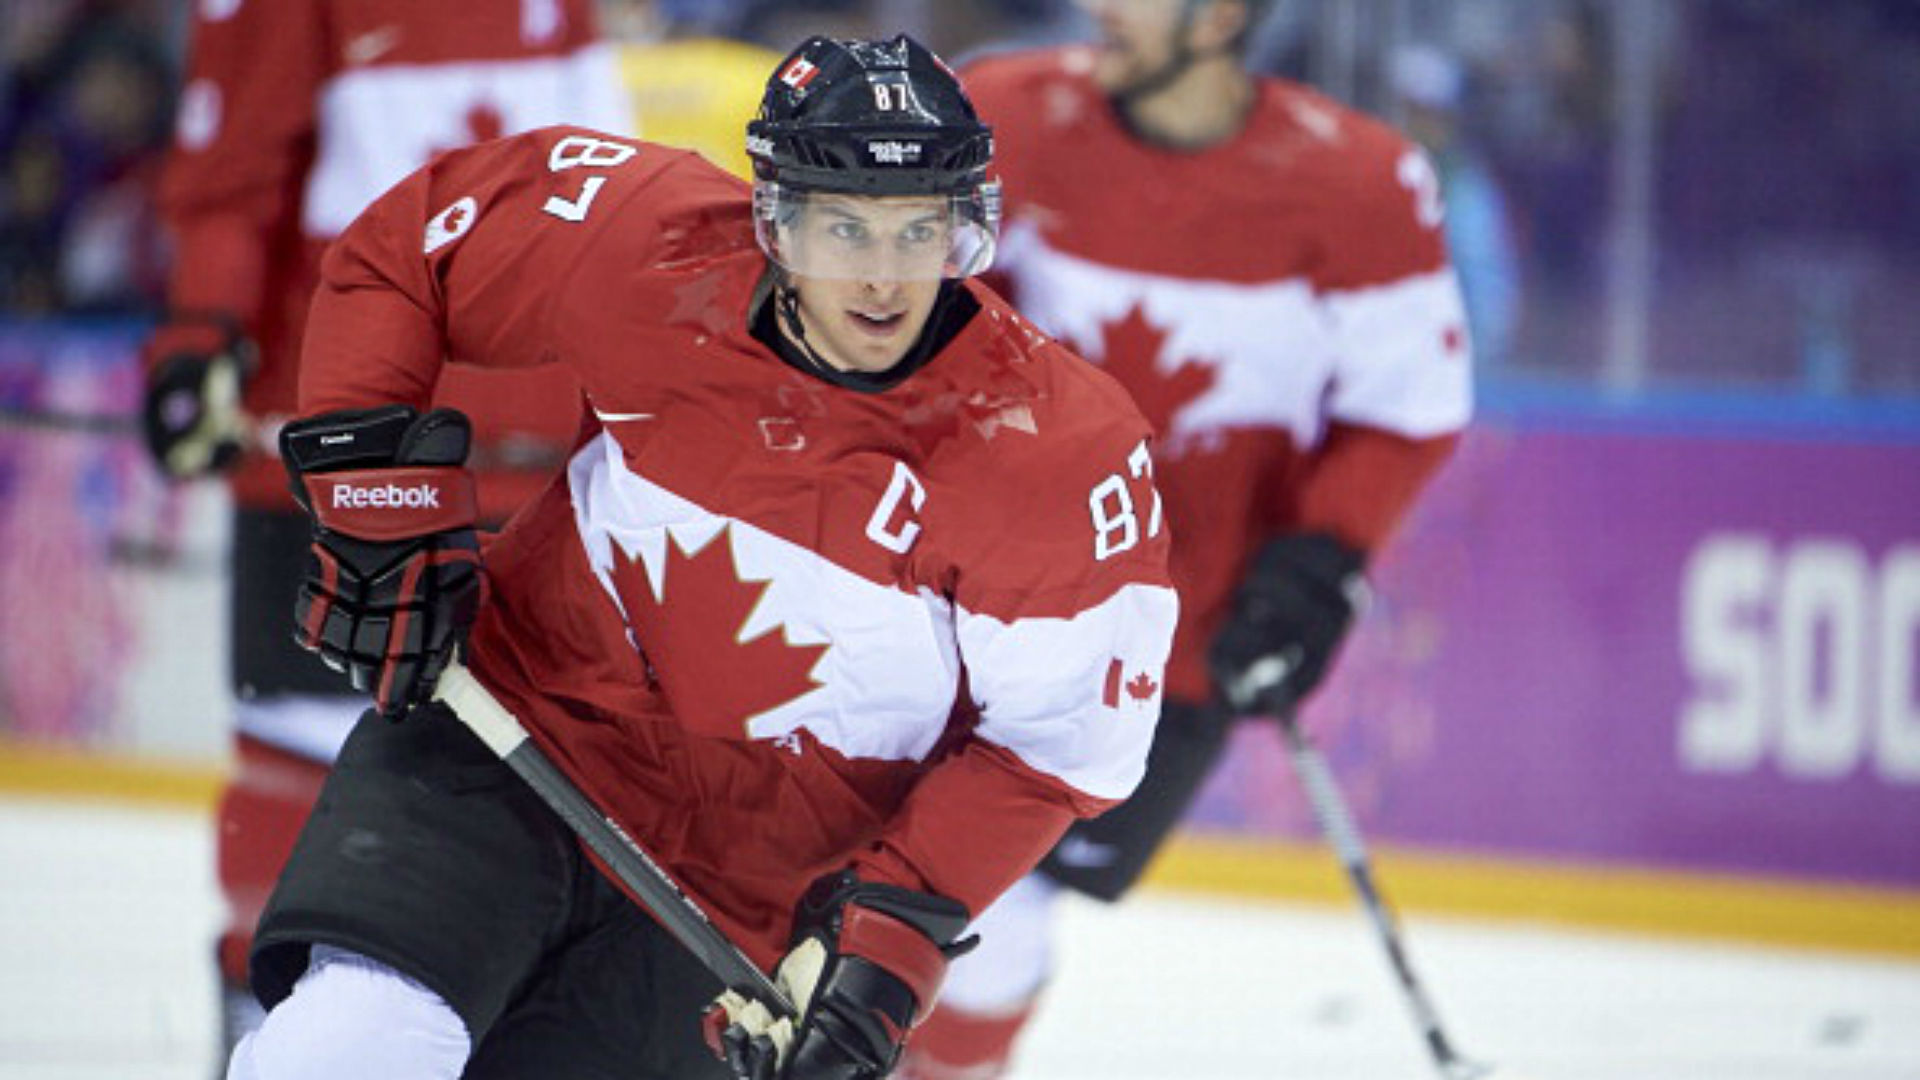 Penguins' Sidney Crosby will play for Canada at World Championships